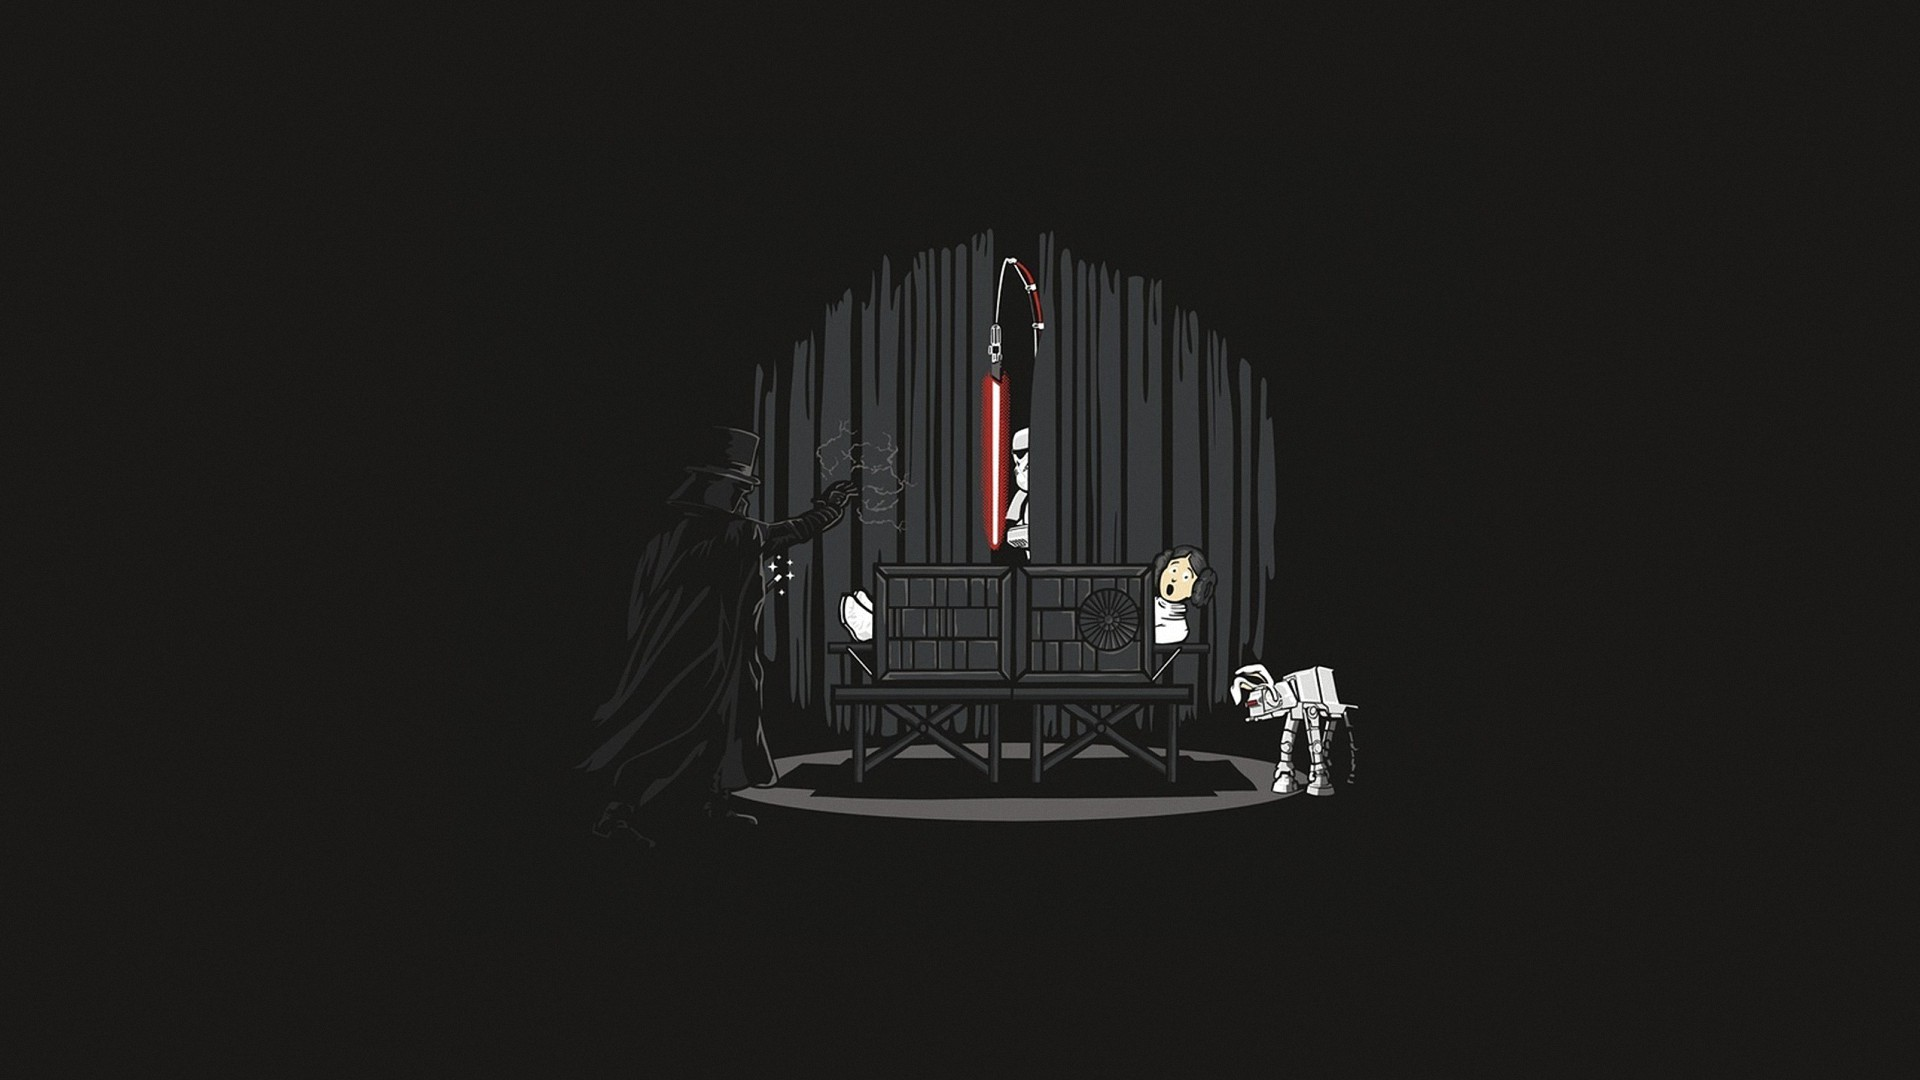 Star Wars Hd Wallpaper 1920x1080 Posted By Sarah Thompson